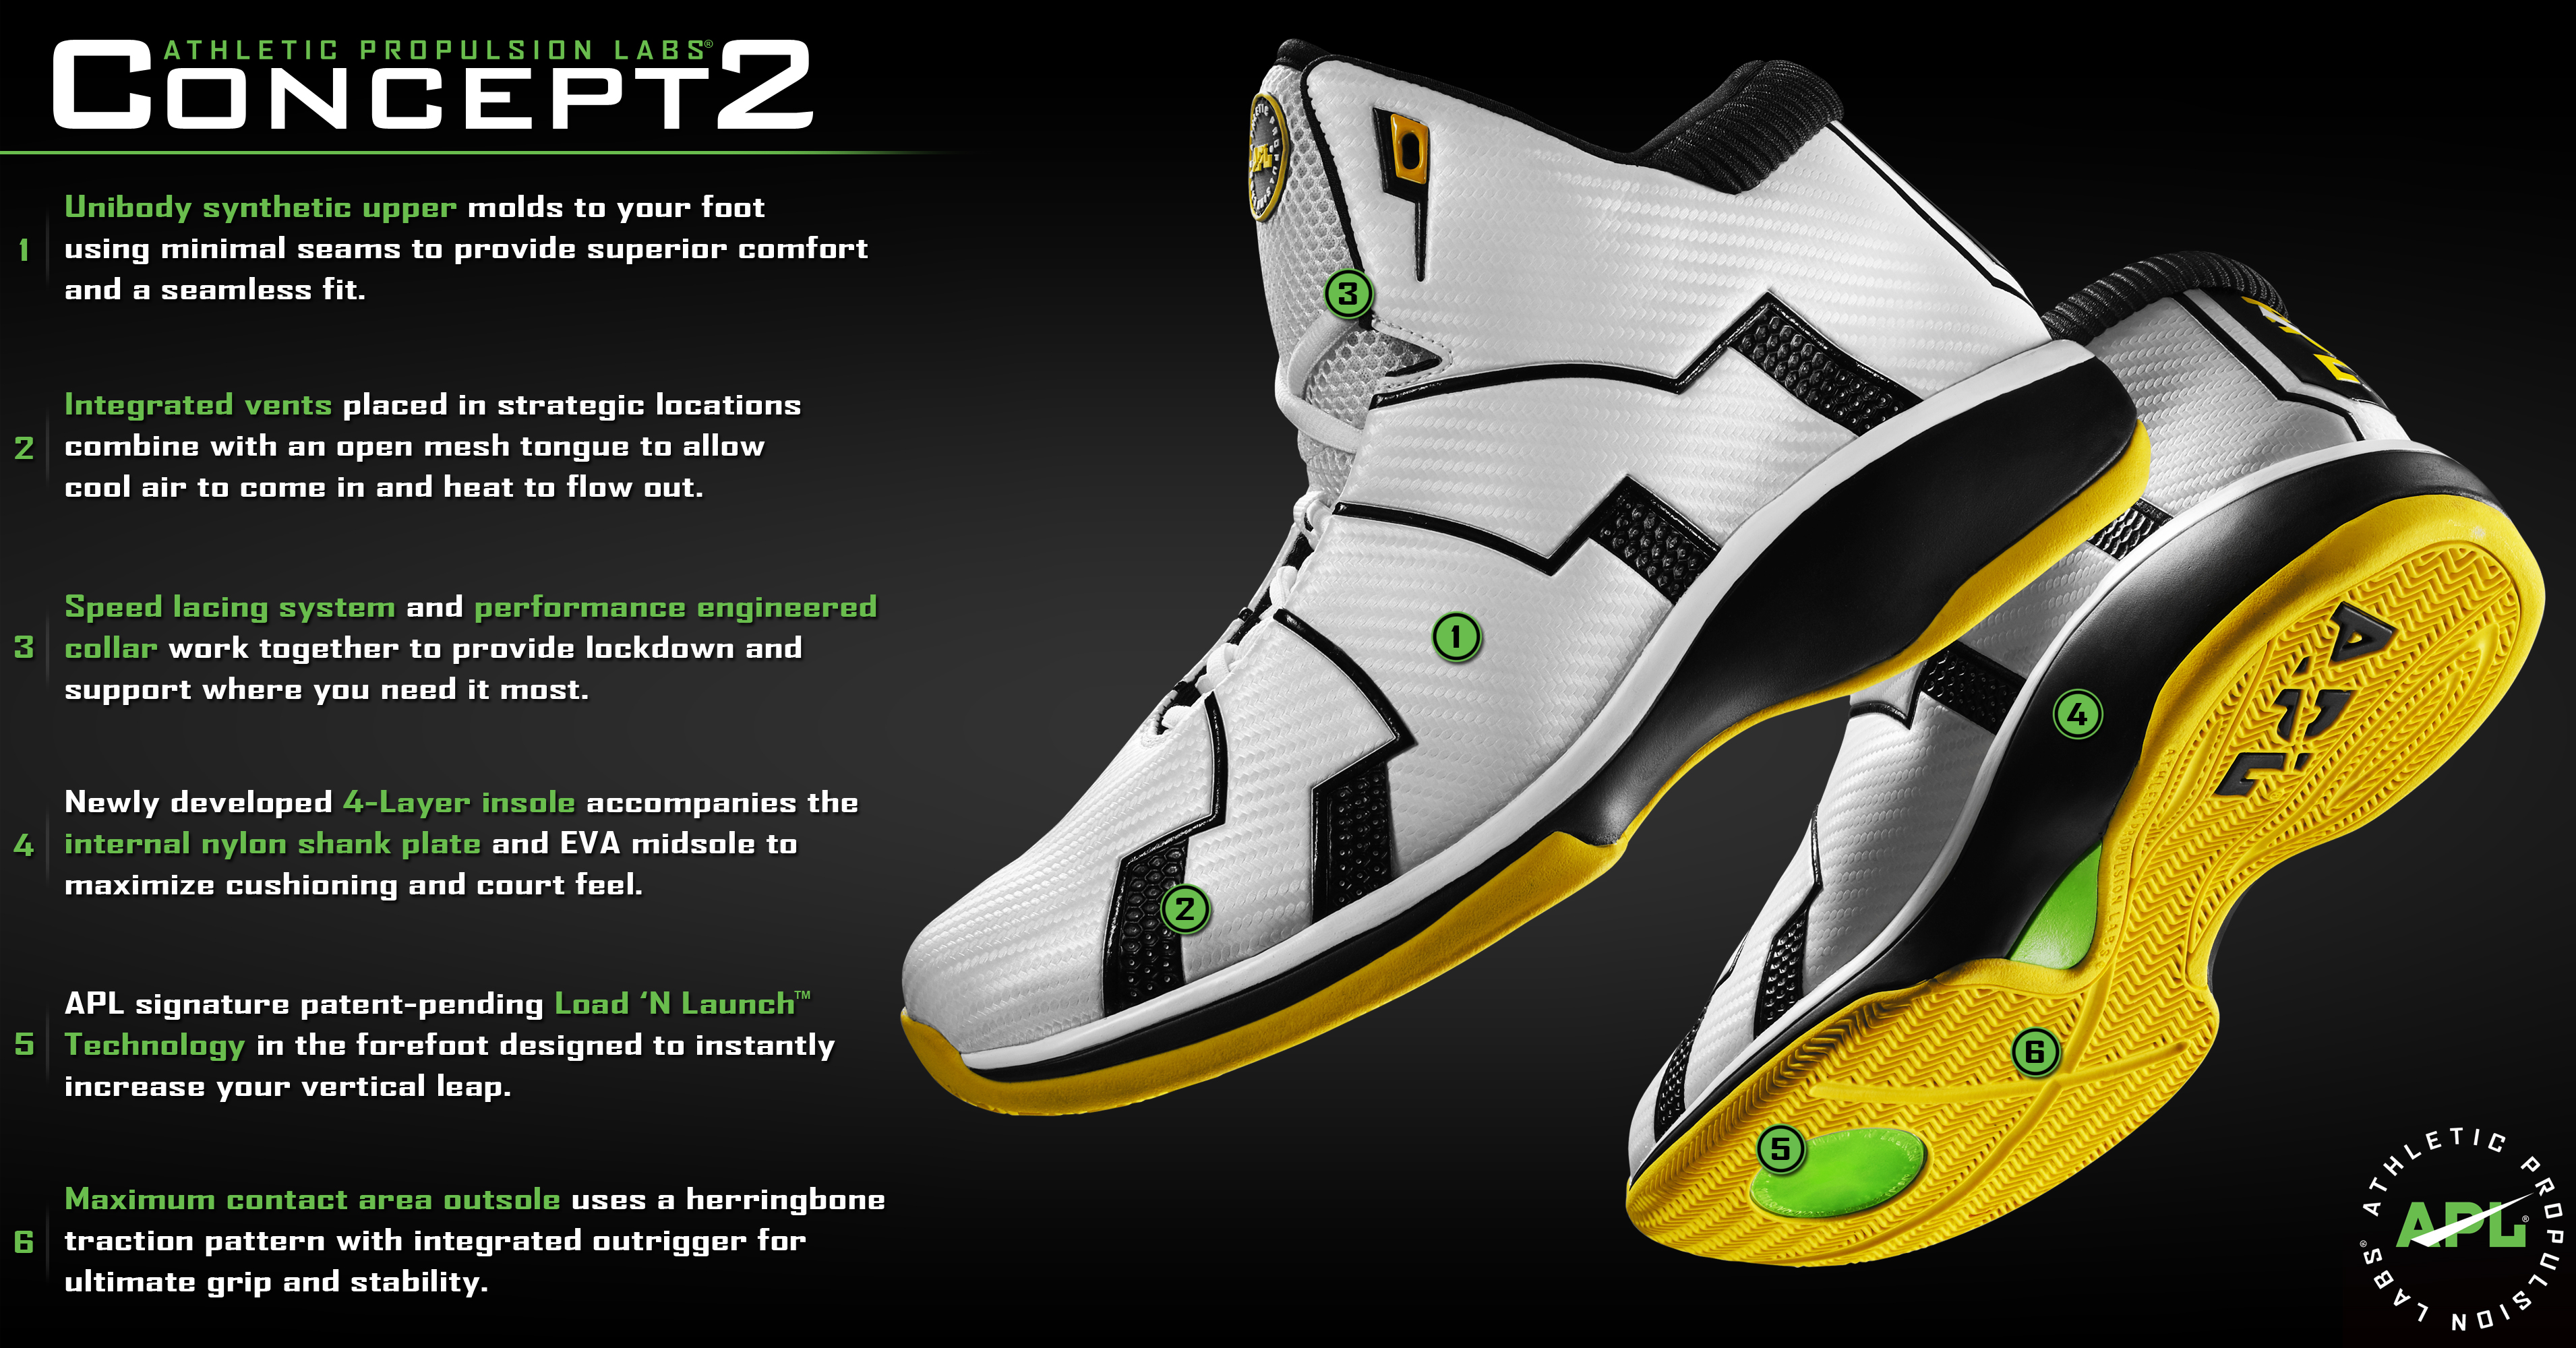 Athletic Propulsion Labs APL Concept 2 Basketball ShoesTechnical  Specifications Information SheetAthletic Propulsion Labs APL Concept 2  Basketball Shoes ... 3ecd30a61